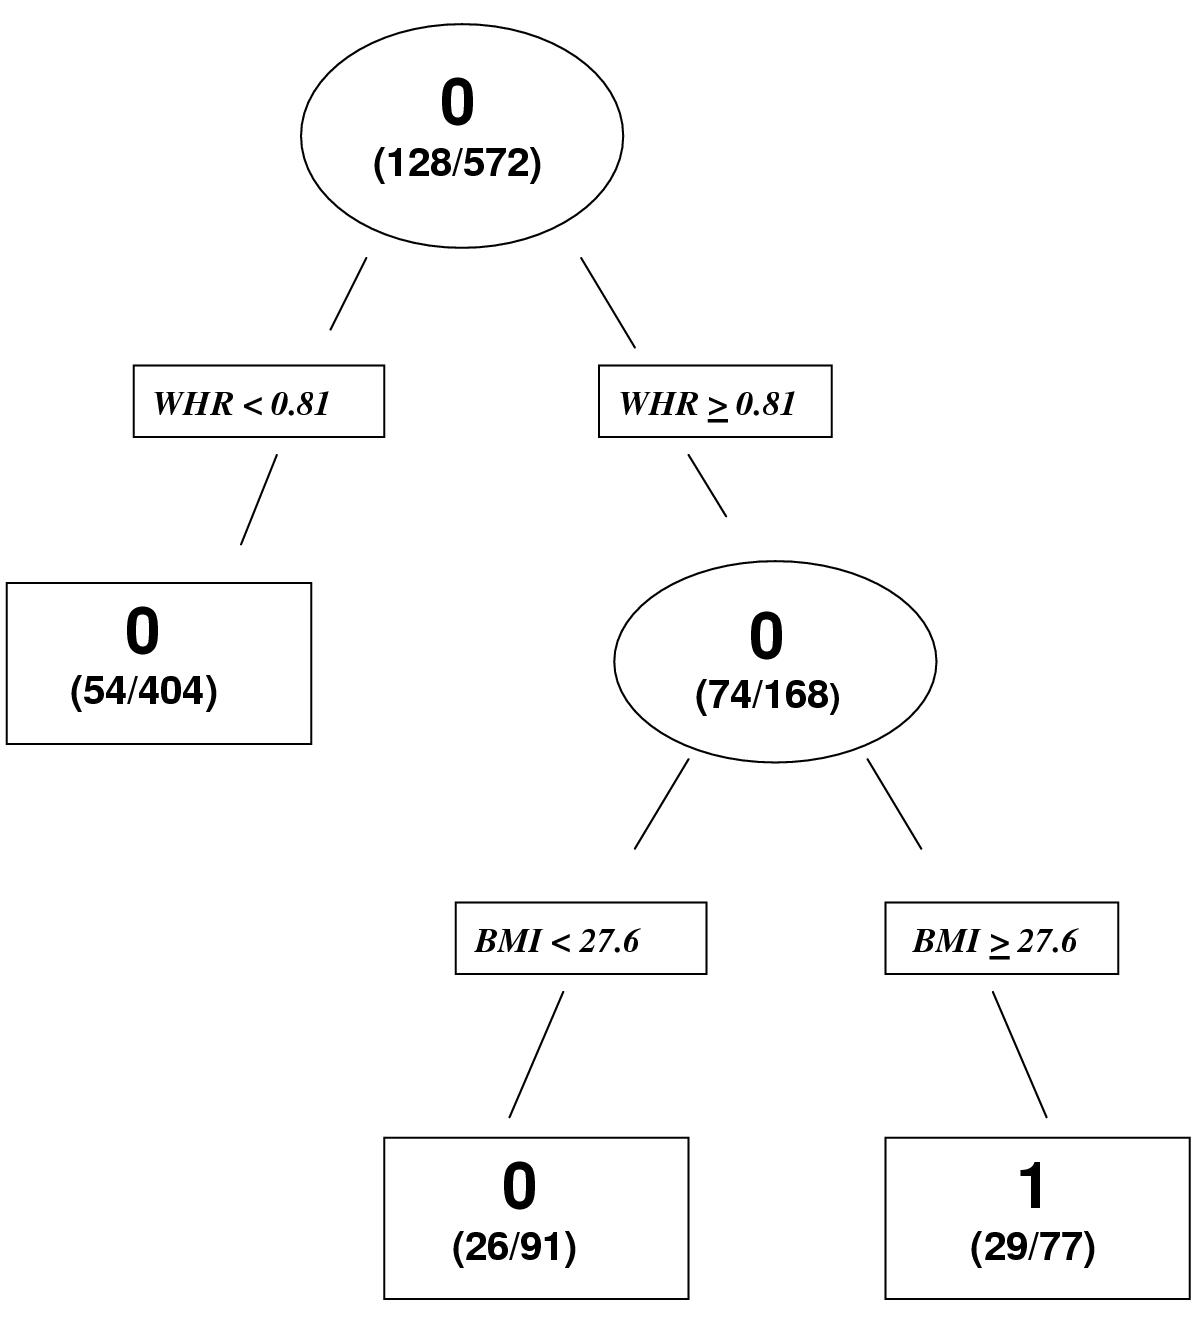 https://static-content.springer.com/image/art%3A10.1186%2F1471-2288-4-7/MediaObjects/12874_2003_Article_65_Fig3_HTML.jpg